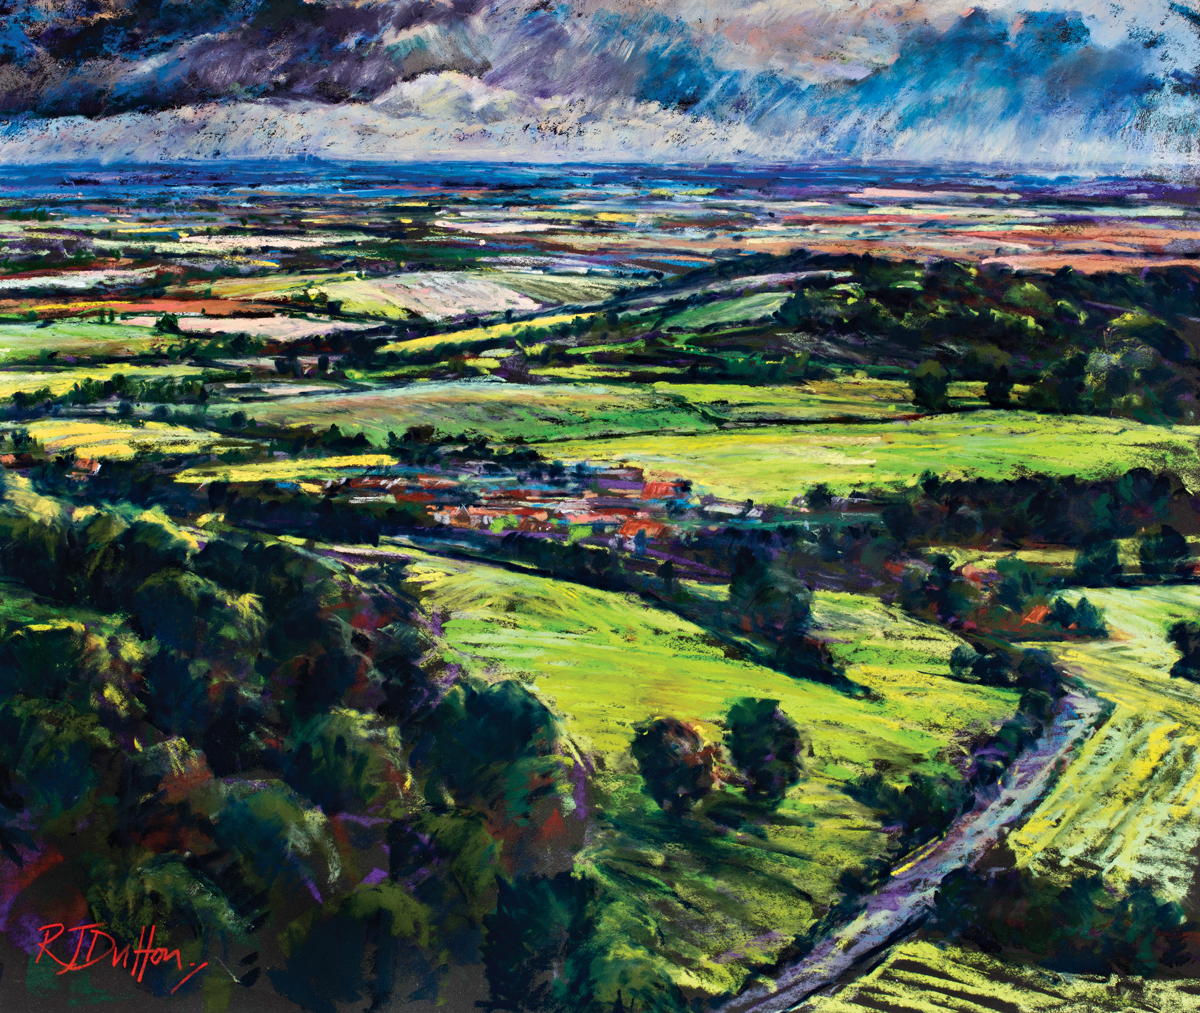 Yorkshire from Sutton bank, Robert Dutton, moorland pastel